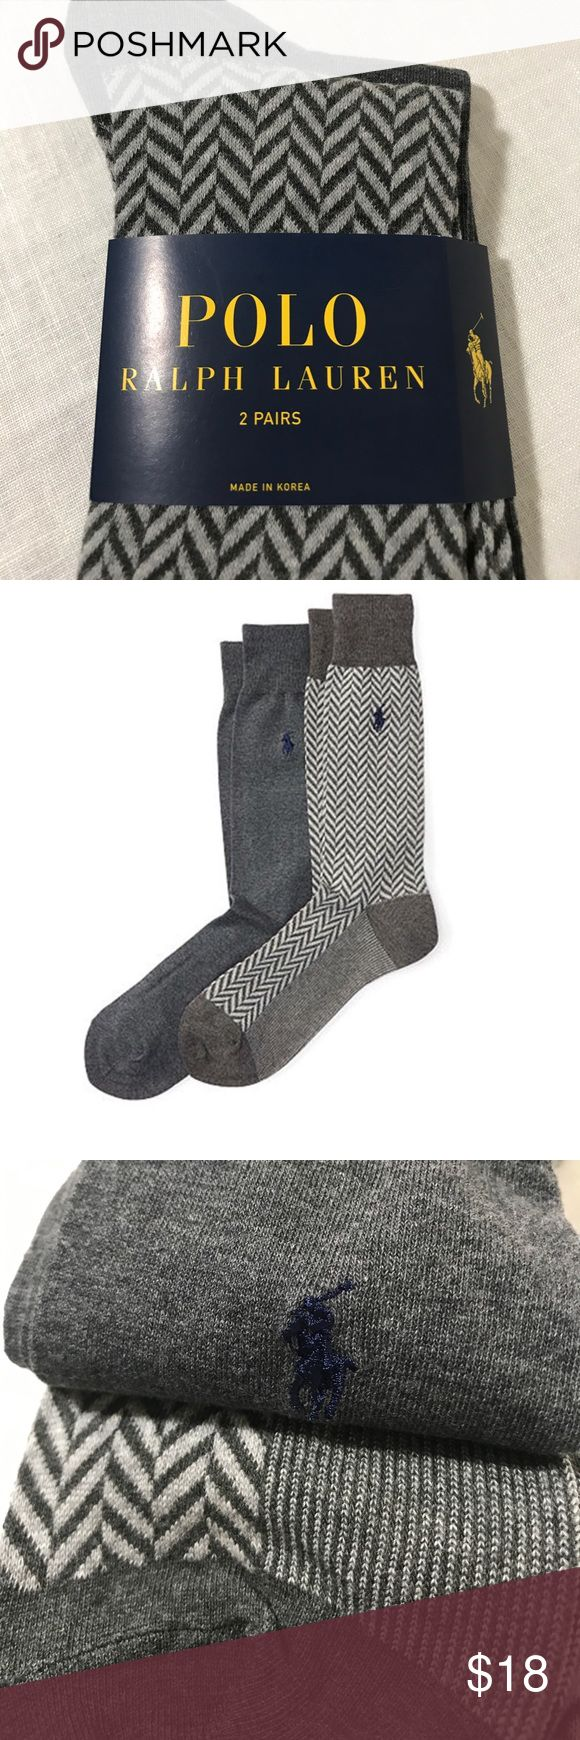 Polo Ralph Lauren Stretch Trouser Sock 2-Pack Polo Ralph Lauren Stretch Trouser Sock 2-Pack (Shoe Size 6 - 12.5) 60% cotton 31% polyester 7% Nylon 2% Spandex. Soft fabric Polo by Ralph Lauren Underwear & Socks Dress Socks